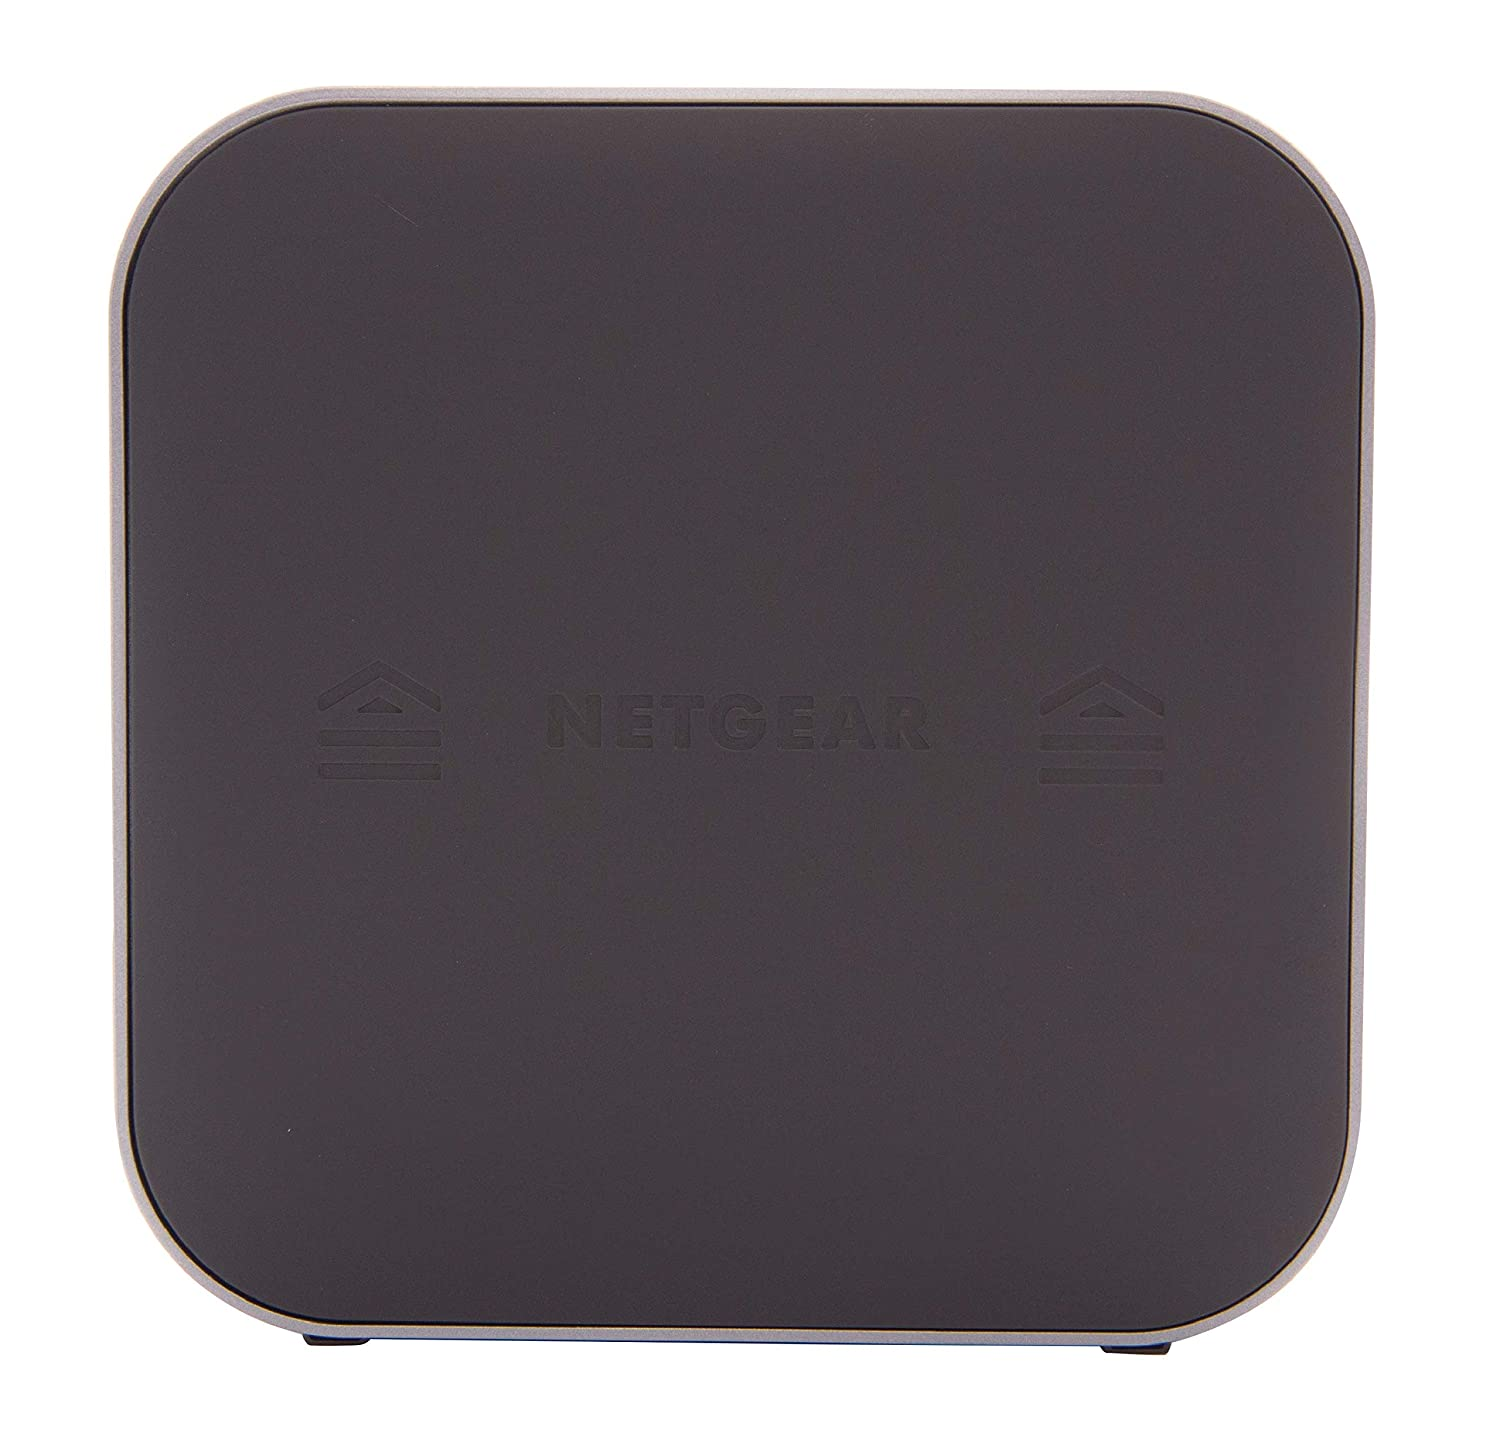 NETGEAR Nighthawk M1 Mobile Hotspot Router (MR1100)